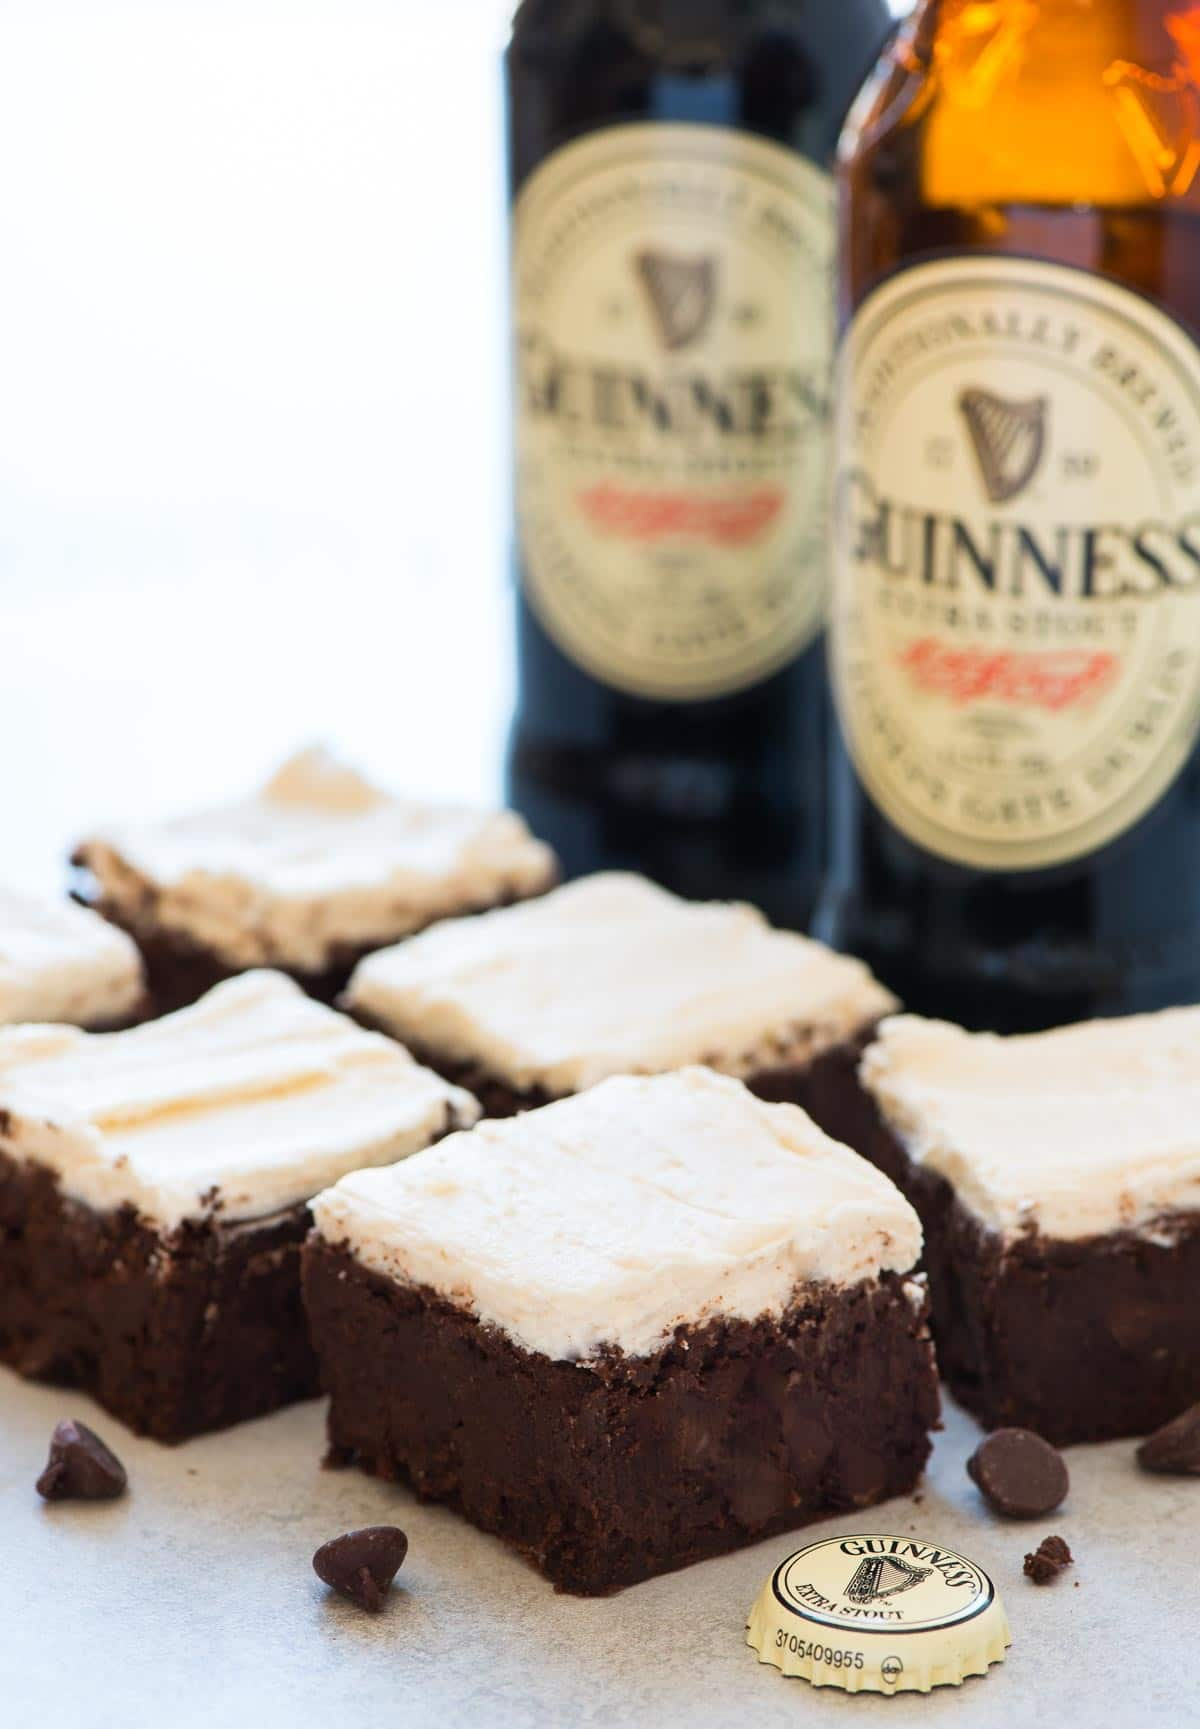 Guinness Brownies – Moist, chewy brownies. Super decadent with creamy Guinness frosting. If you've never had beer brownies before, you HAVE to try this stout brownie recipe! Recipe at wellplated.com | @wellplated